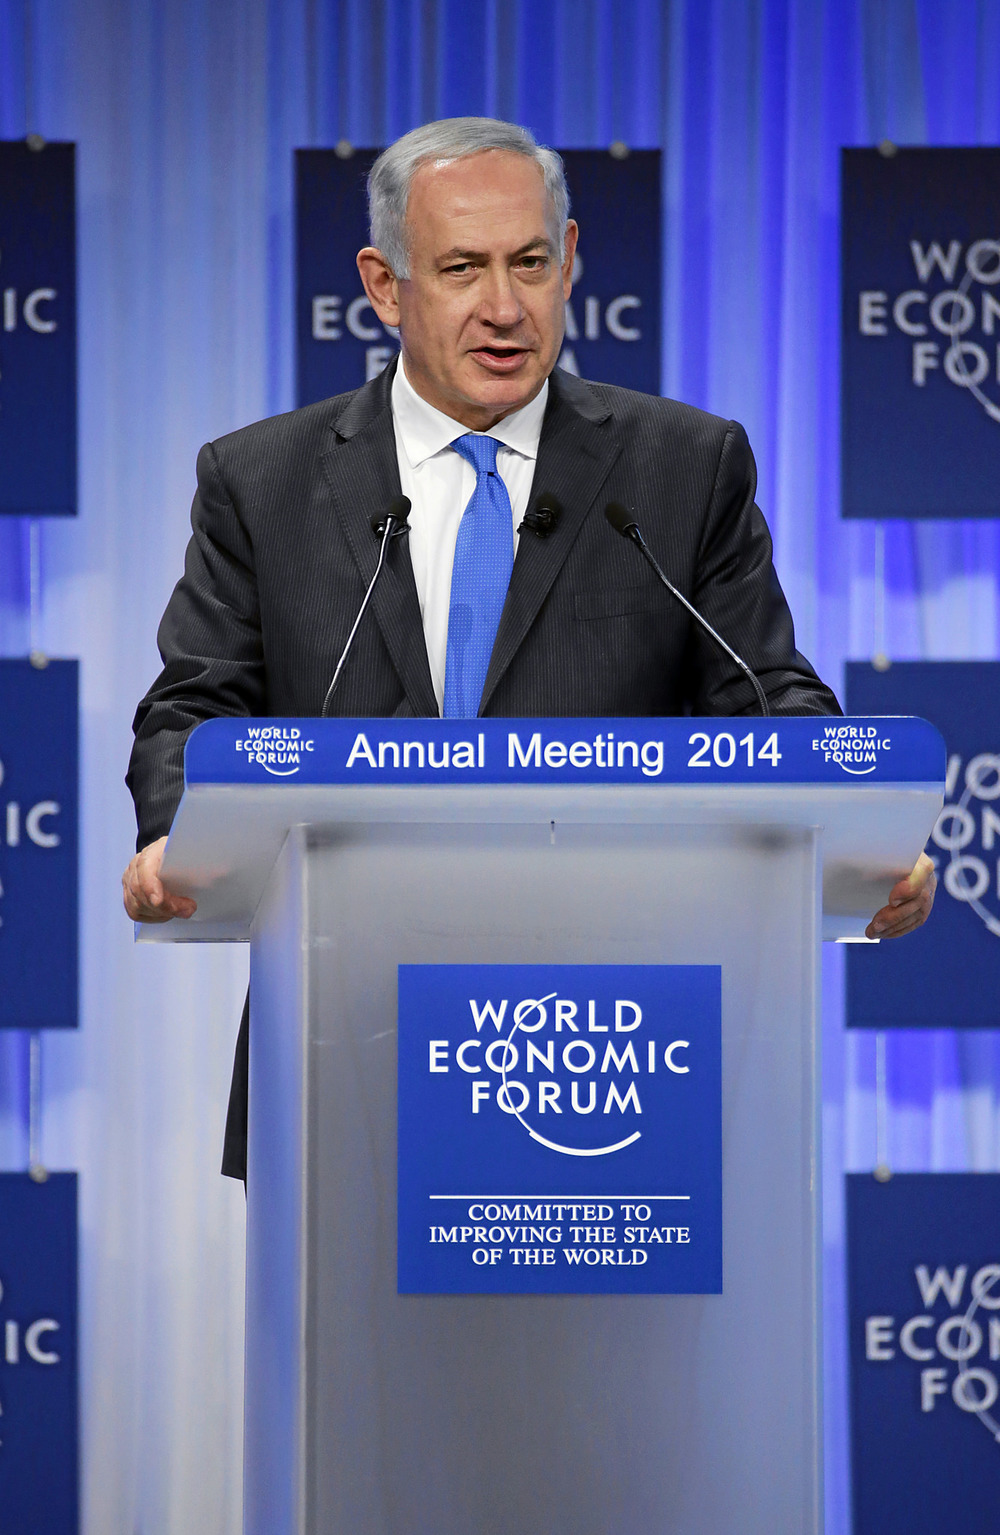 Israeli Prime Minister Benjamin Netanyahu at the 2014 World Economic Forum in Davos, Switzerland. Credit: World Economic Forum/Rimy Steinegger via Flickr.com.